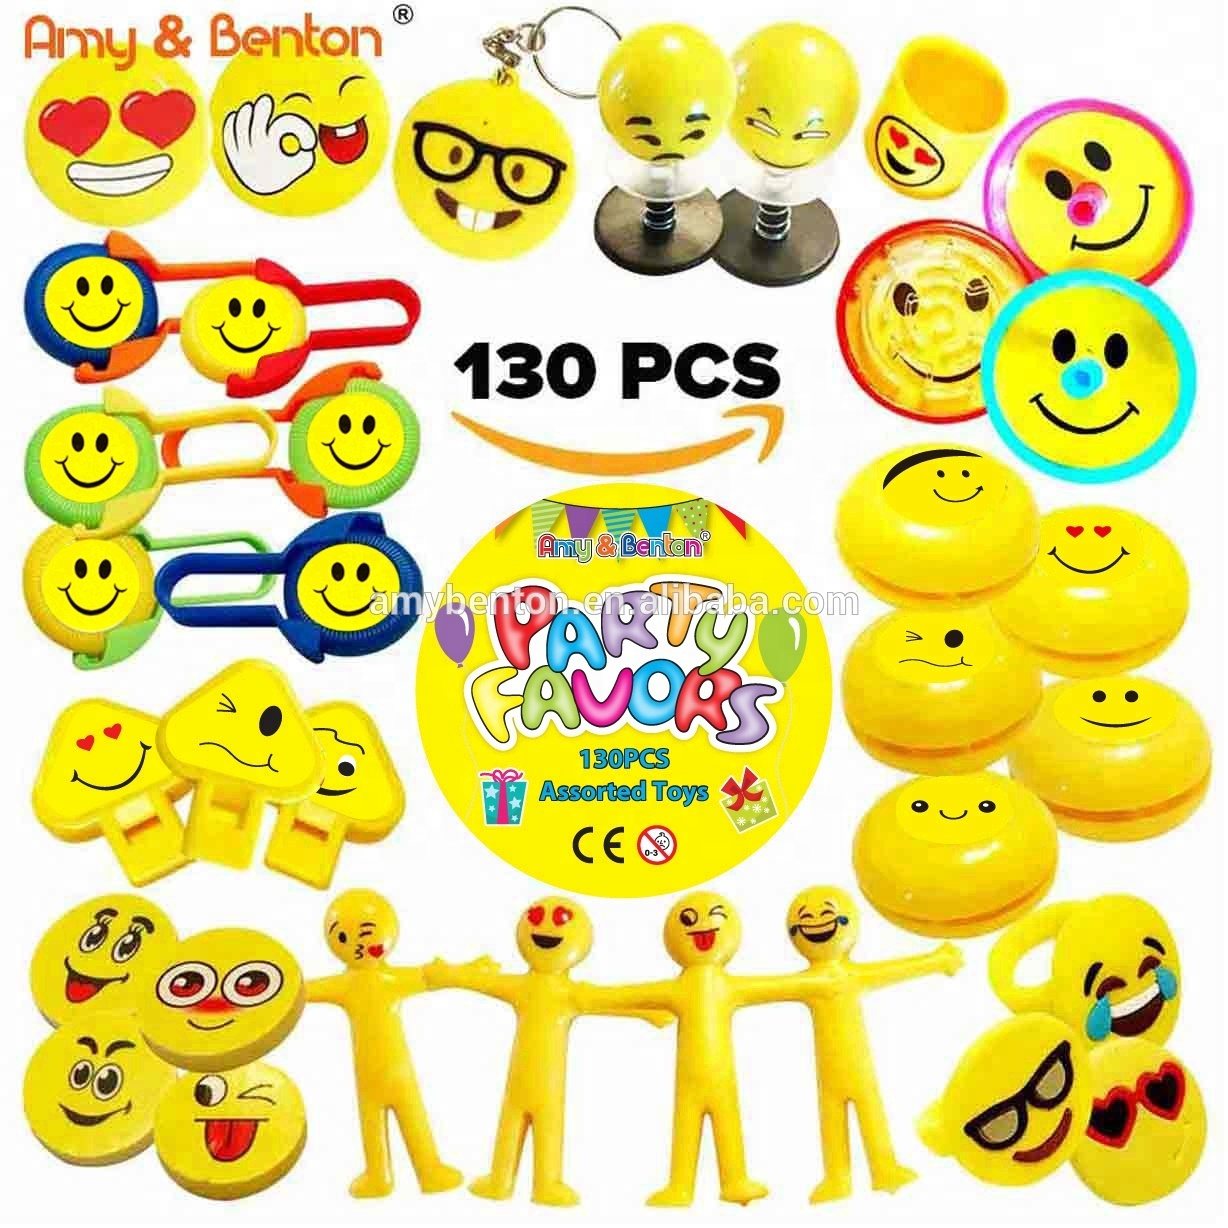 Amazon Hot Selling 130pcs Bulk Toy Emoji Party Supplies Favors For Birthday Goody Bags